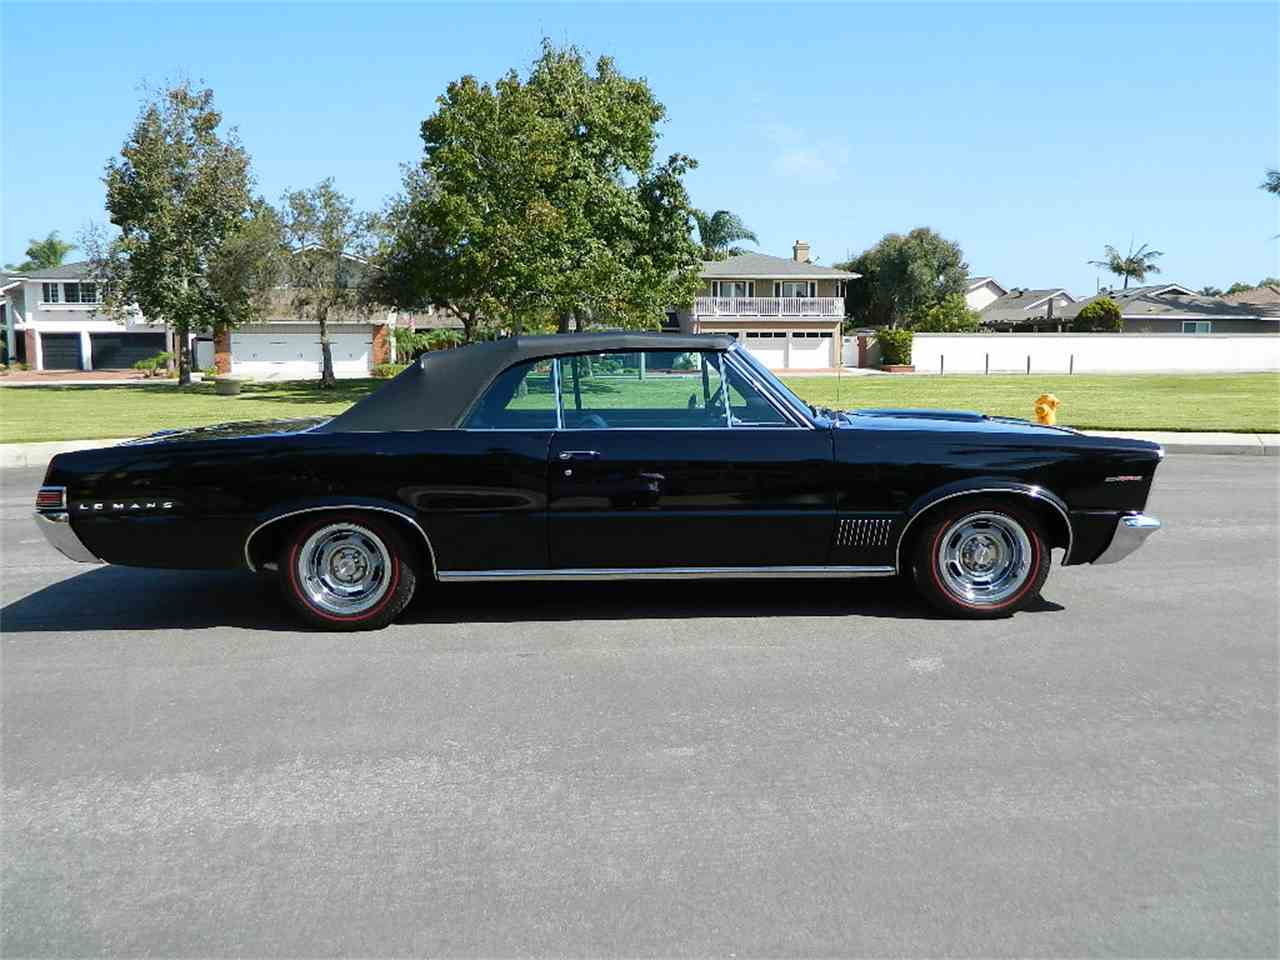 For Sale 65 Corsa Convertible Rolling Chassis California: 1965 Pontiac LeMans For Sale